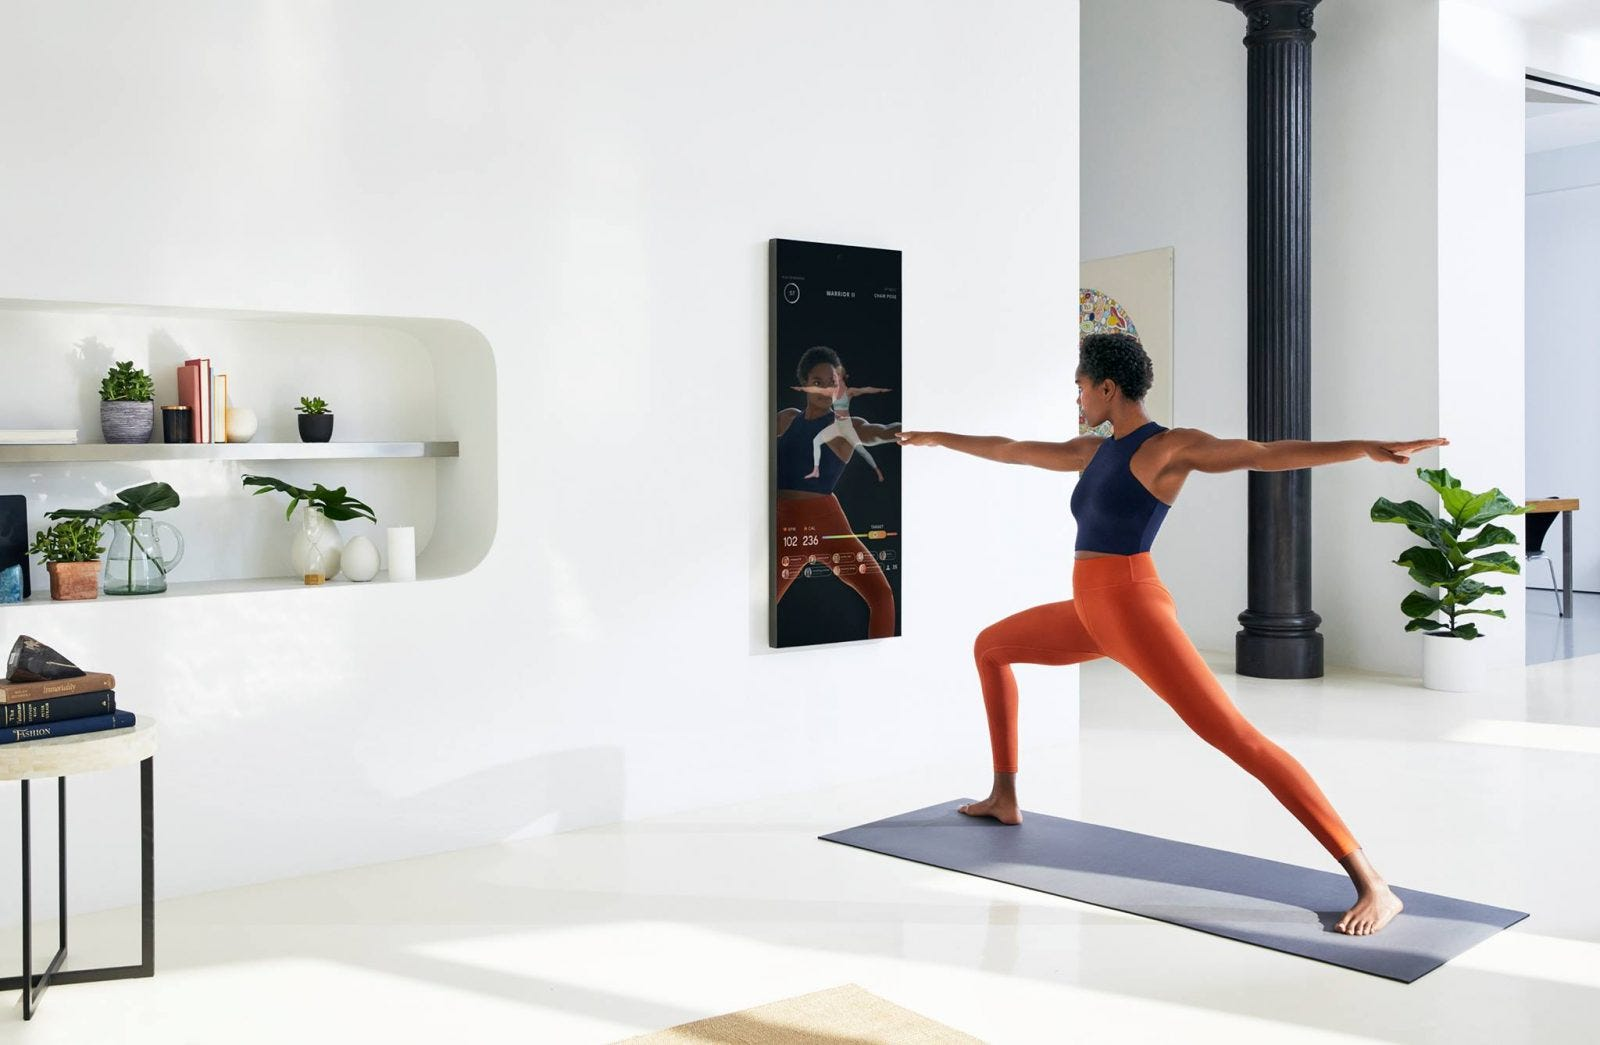 A woman doing a mirror workout in her living room.